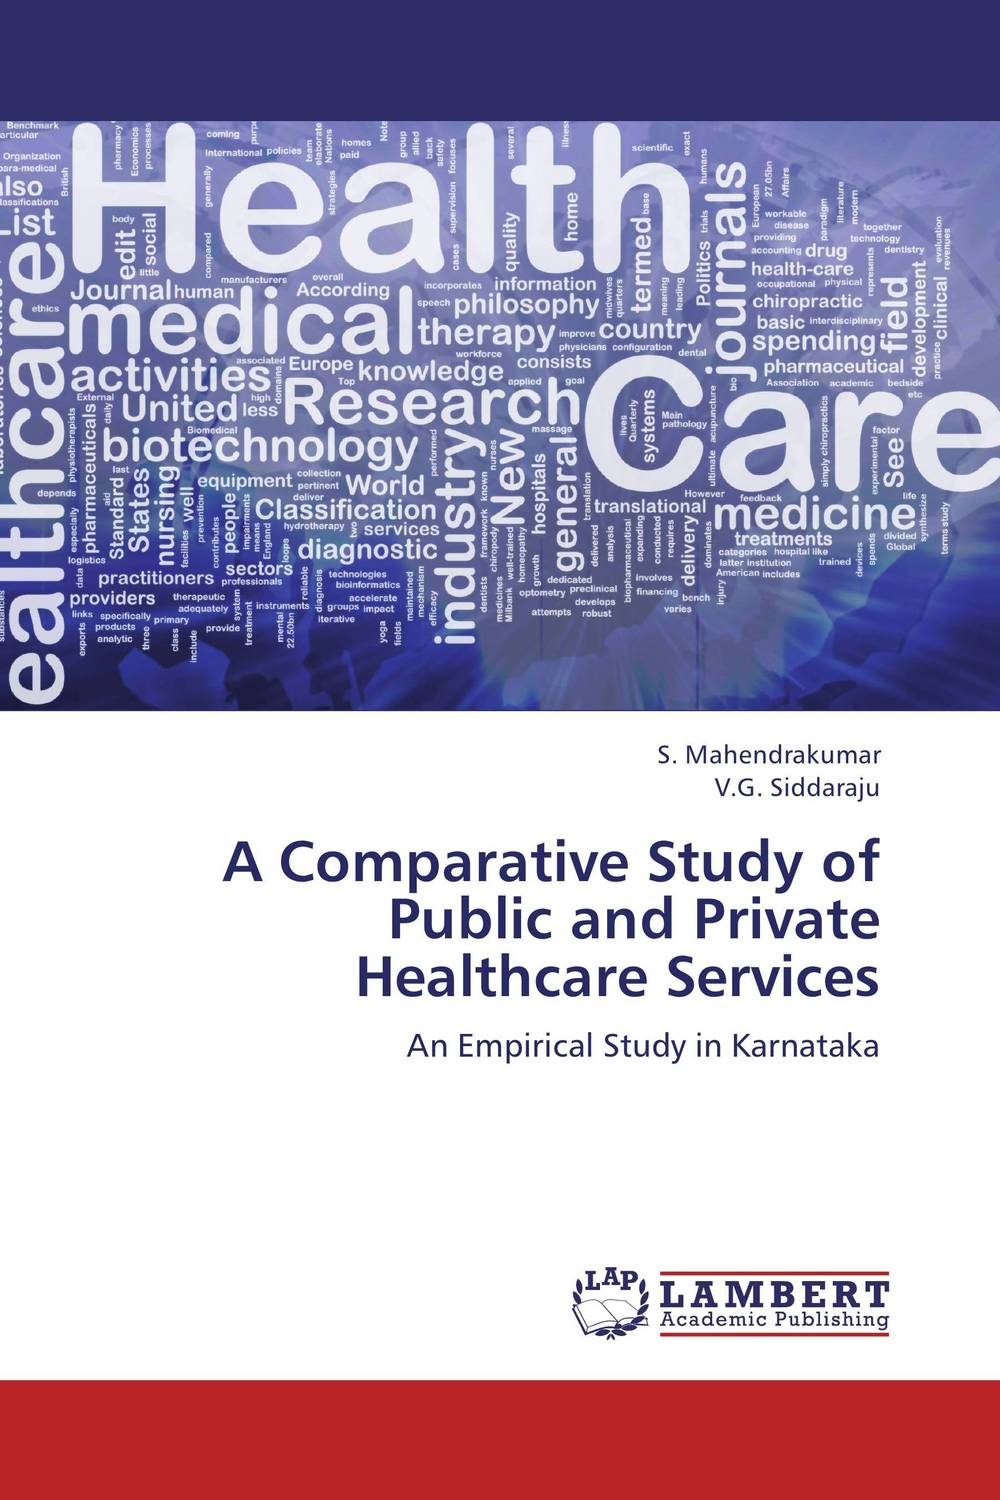 A Comparative Study of Public and Private Healthcare Services a comparative study of public and private healthcare services